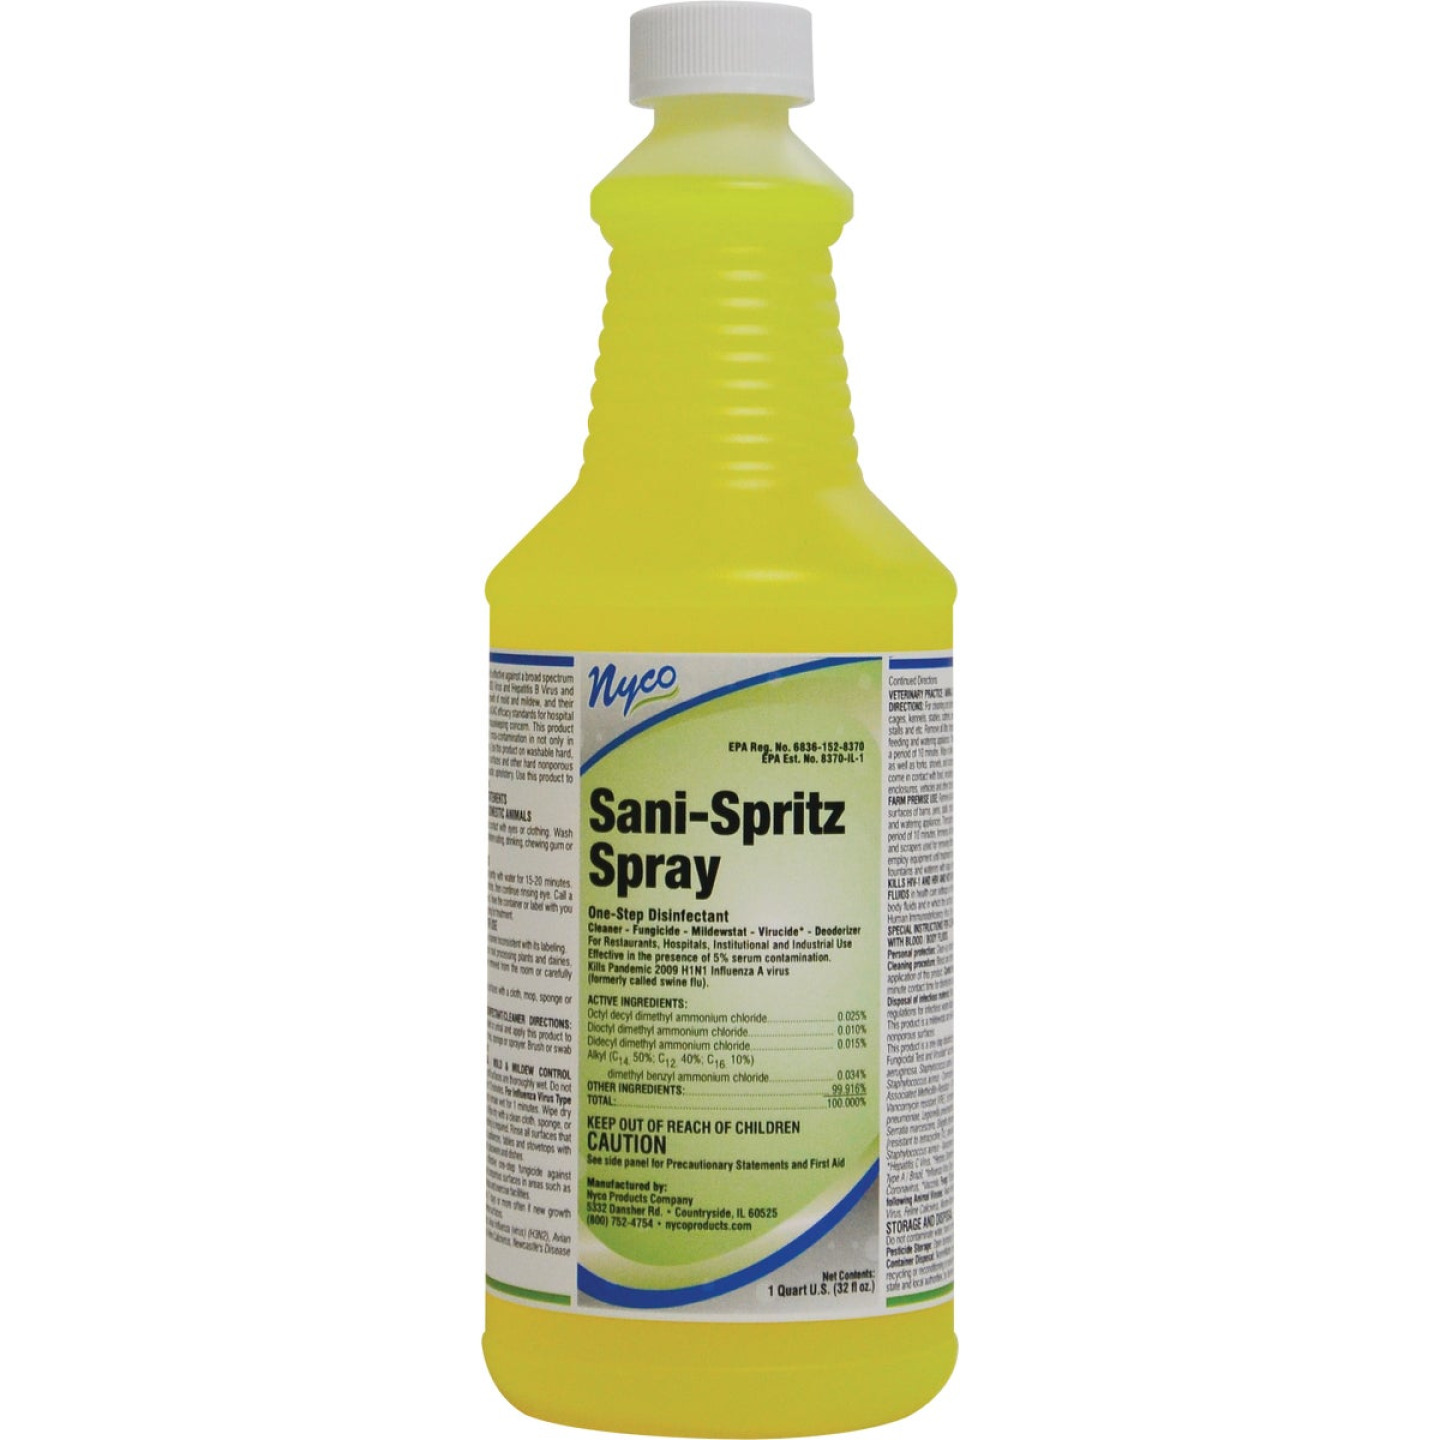 Nyco 1 Qt. Sani-Spritz Spray One-Step Disinfectant Cleaner Refill Image 1